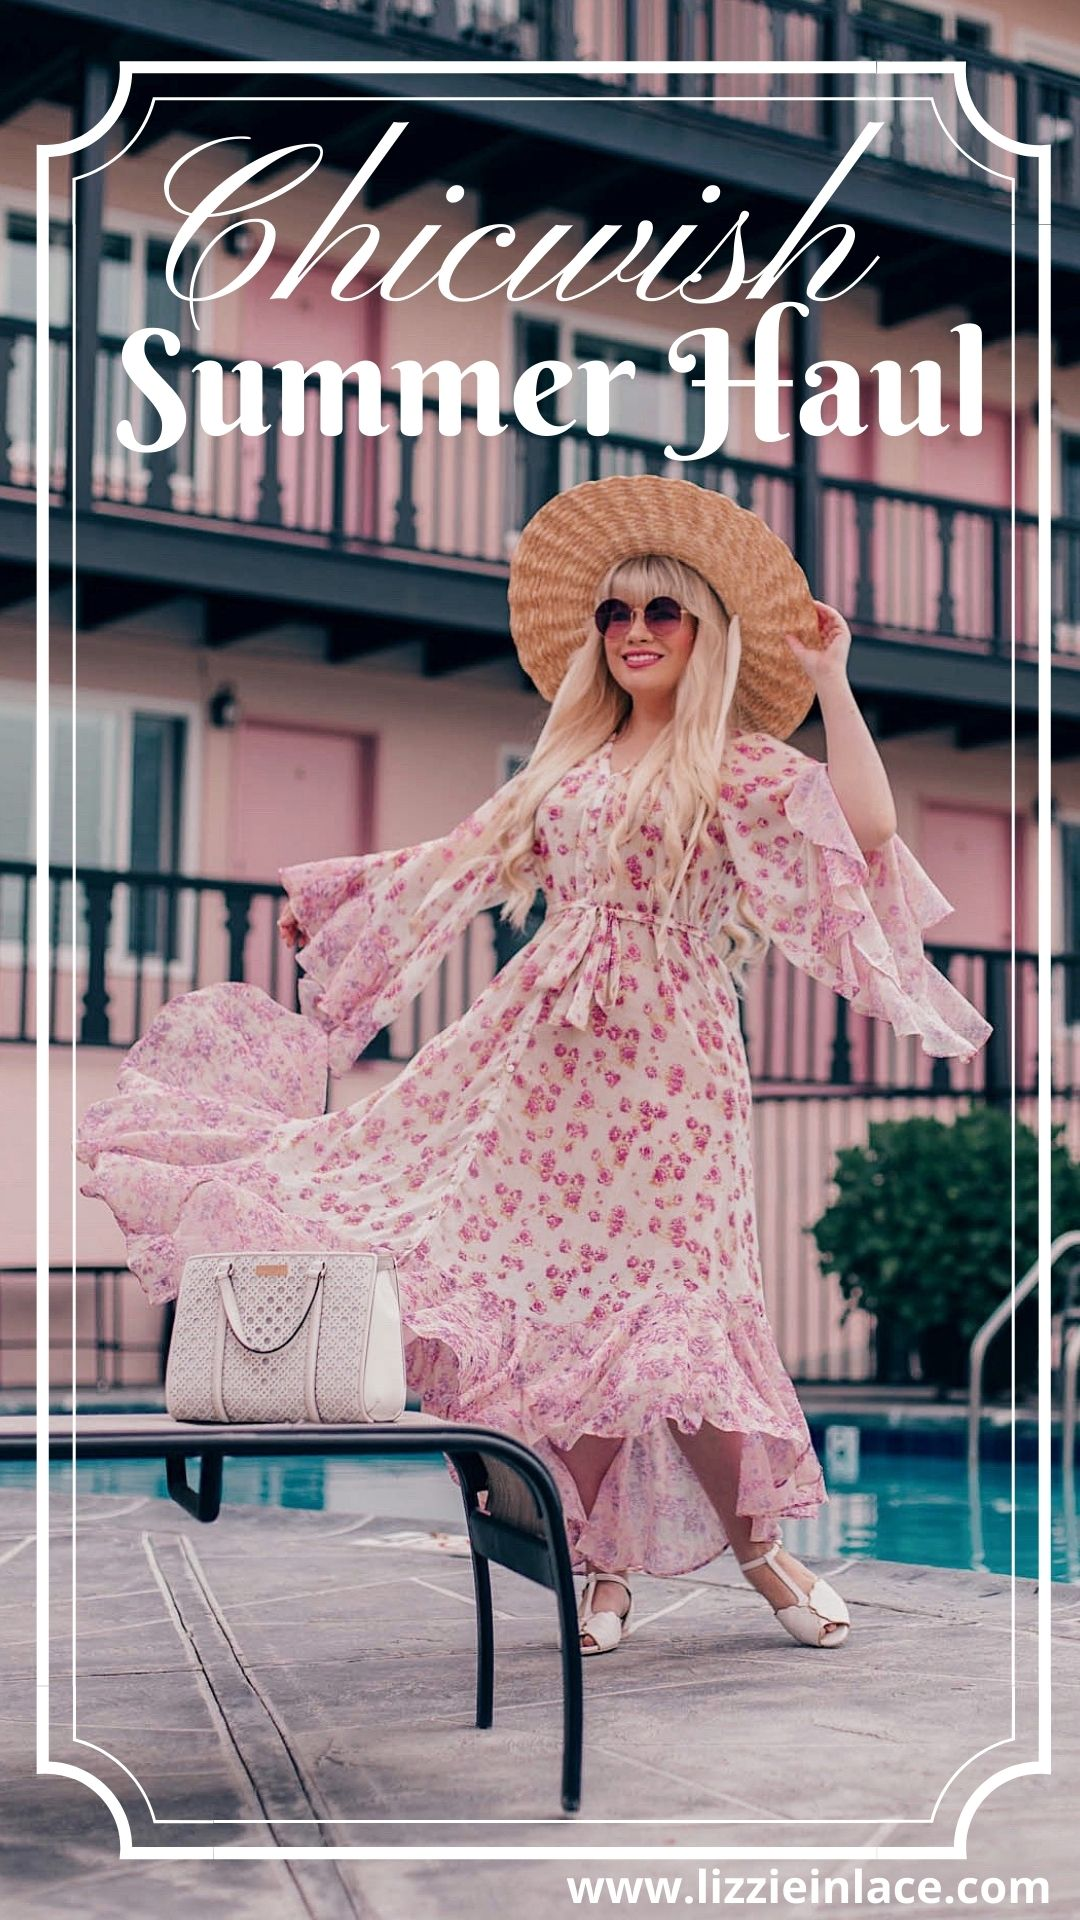 Feminine fashion blogger Elizabeth Hugen of Lizzie in Lace shares her favorite beach dress including a gorgeous floral Chicwish dress for summer and a chicwish haul